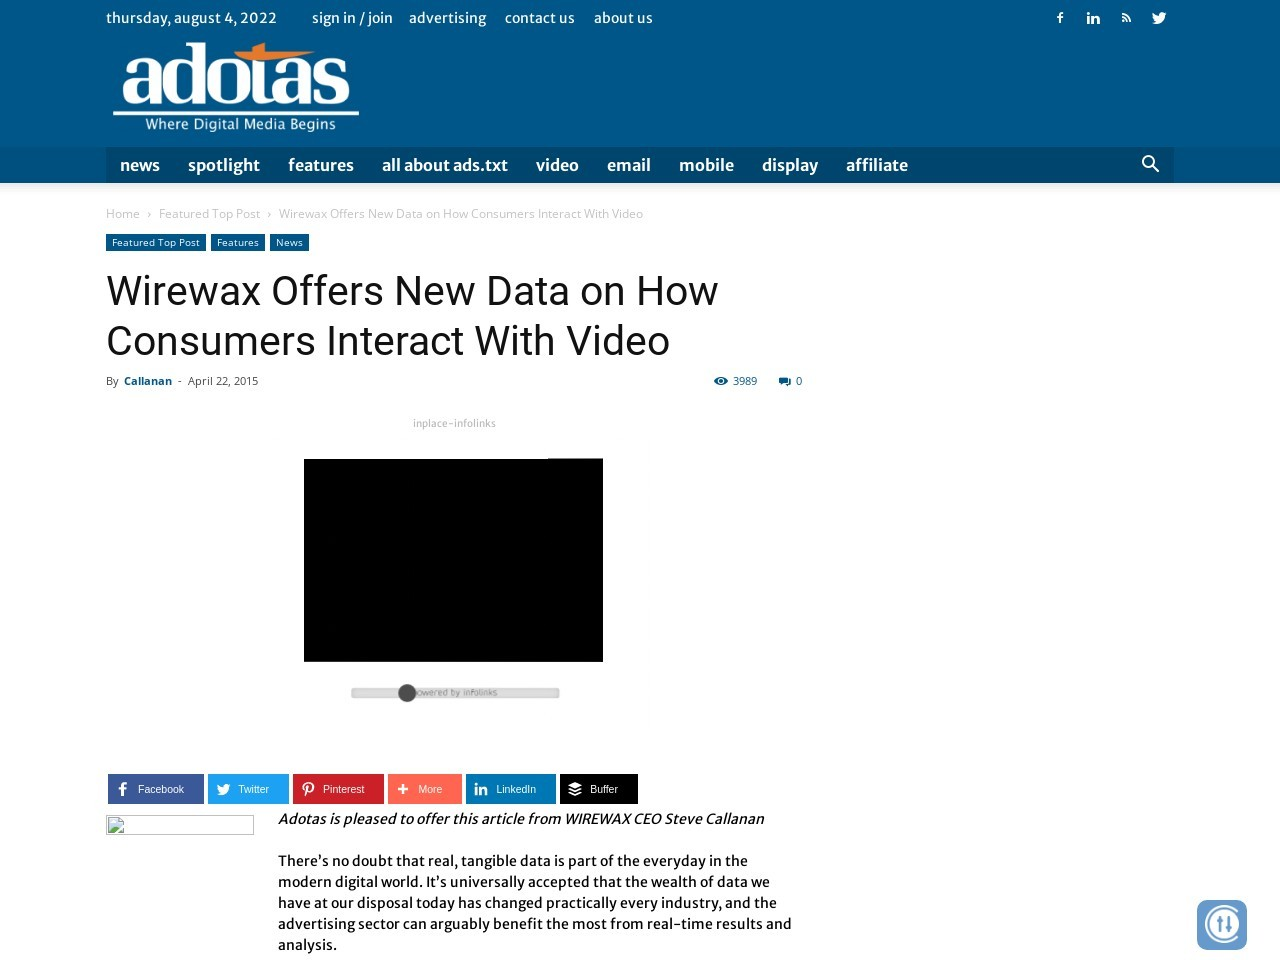 Wirewax Offers New Data on How Consumers Interact With Video